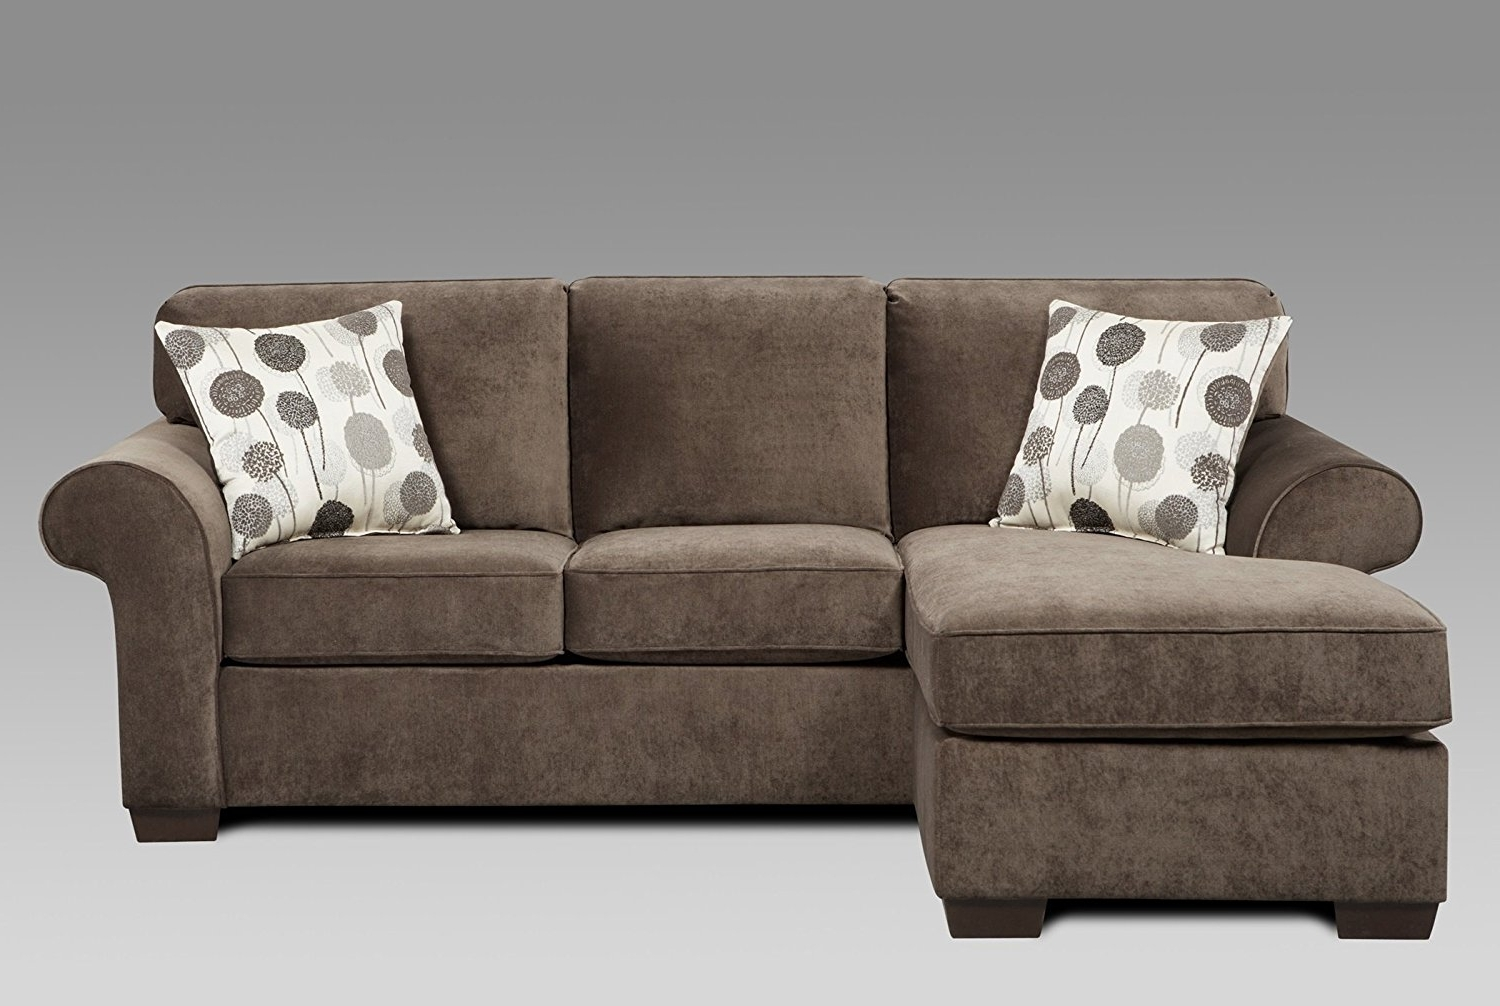 Well Liked Loveseats With Chaise With Amazon: Roundhill Furniture Fabric Sectional Sofa And Loveseat (View 8 of 15)